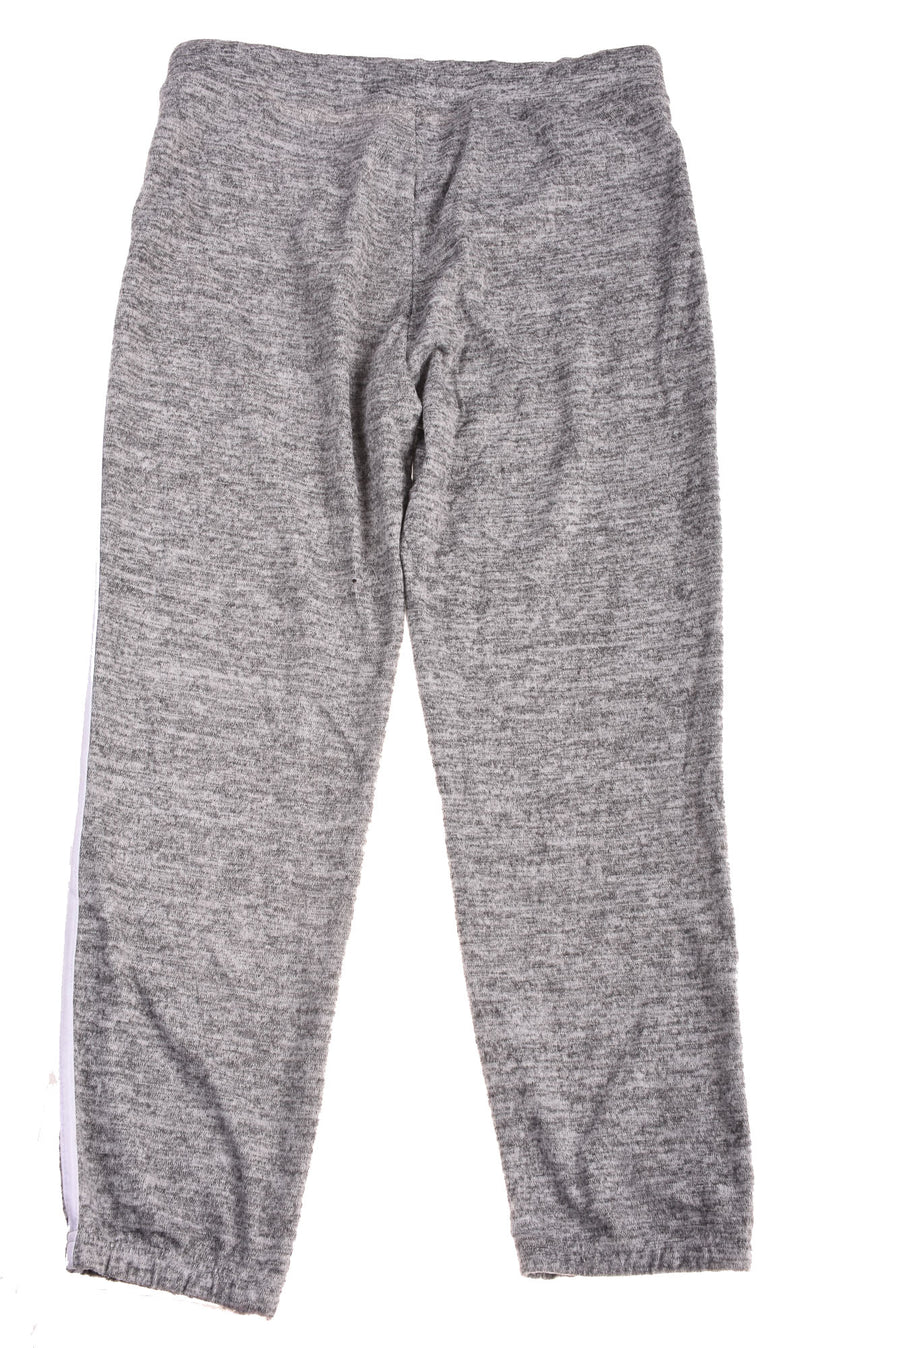 USED Lit 26 Women's Plus Pants 2x/3x Gray & White